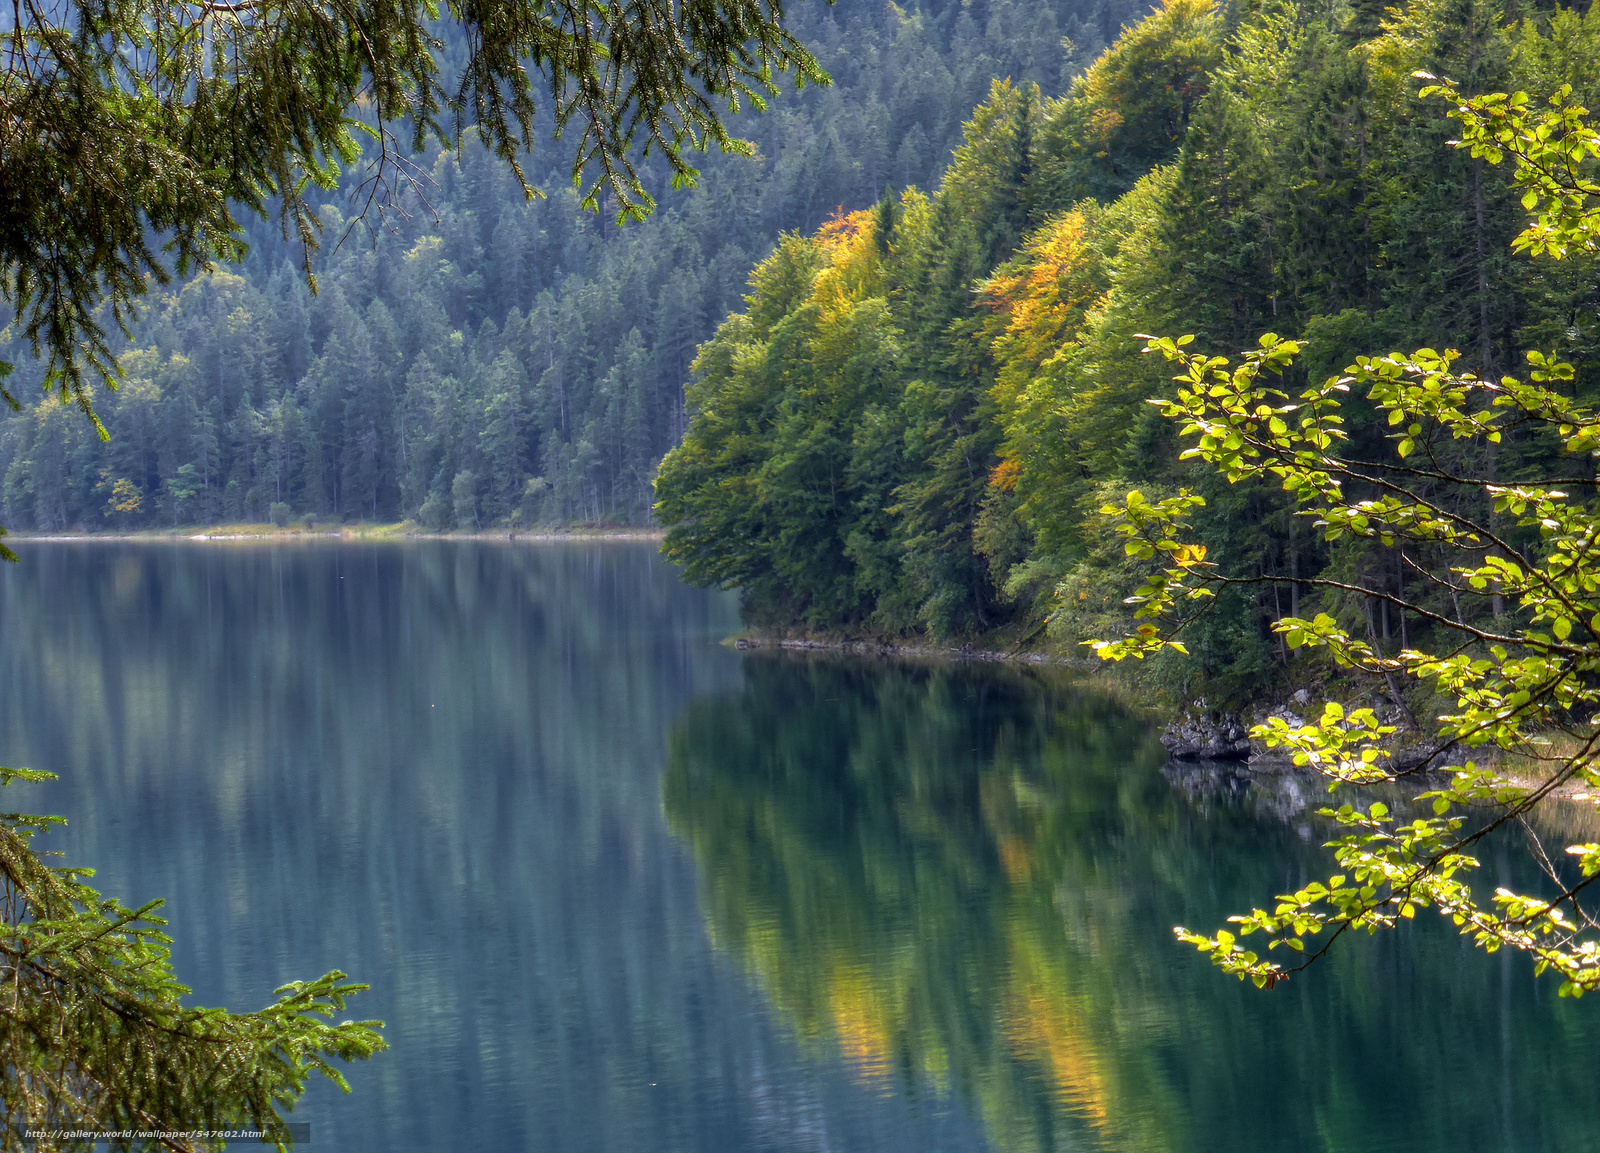 Download wallpaper Lake Eibsee, Bavaria, Germany, Eibsee ...